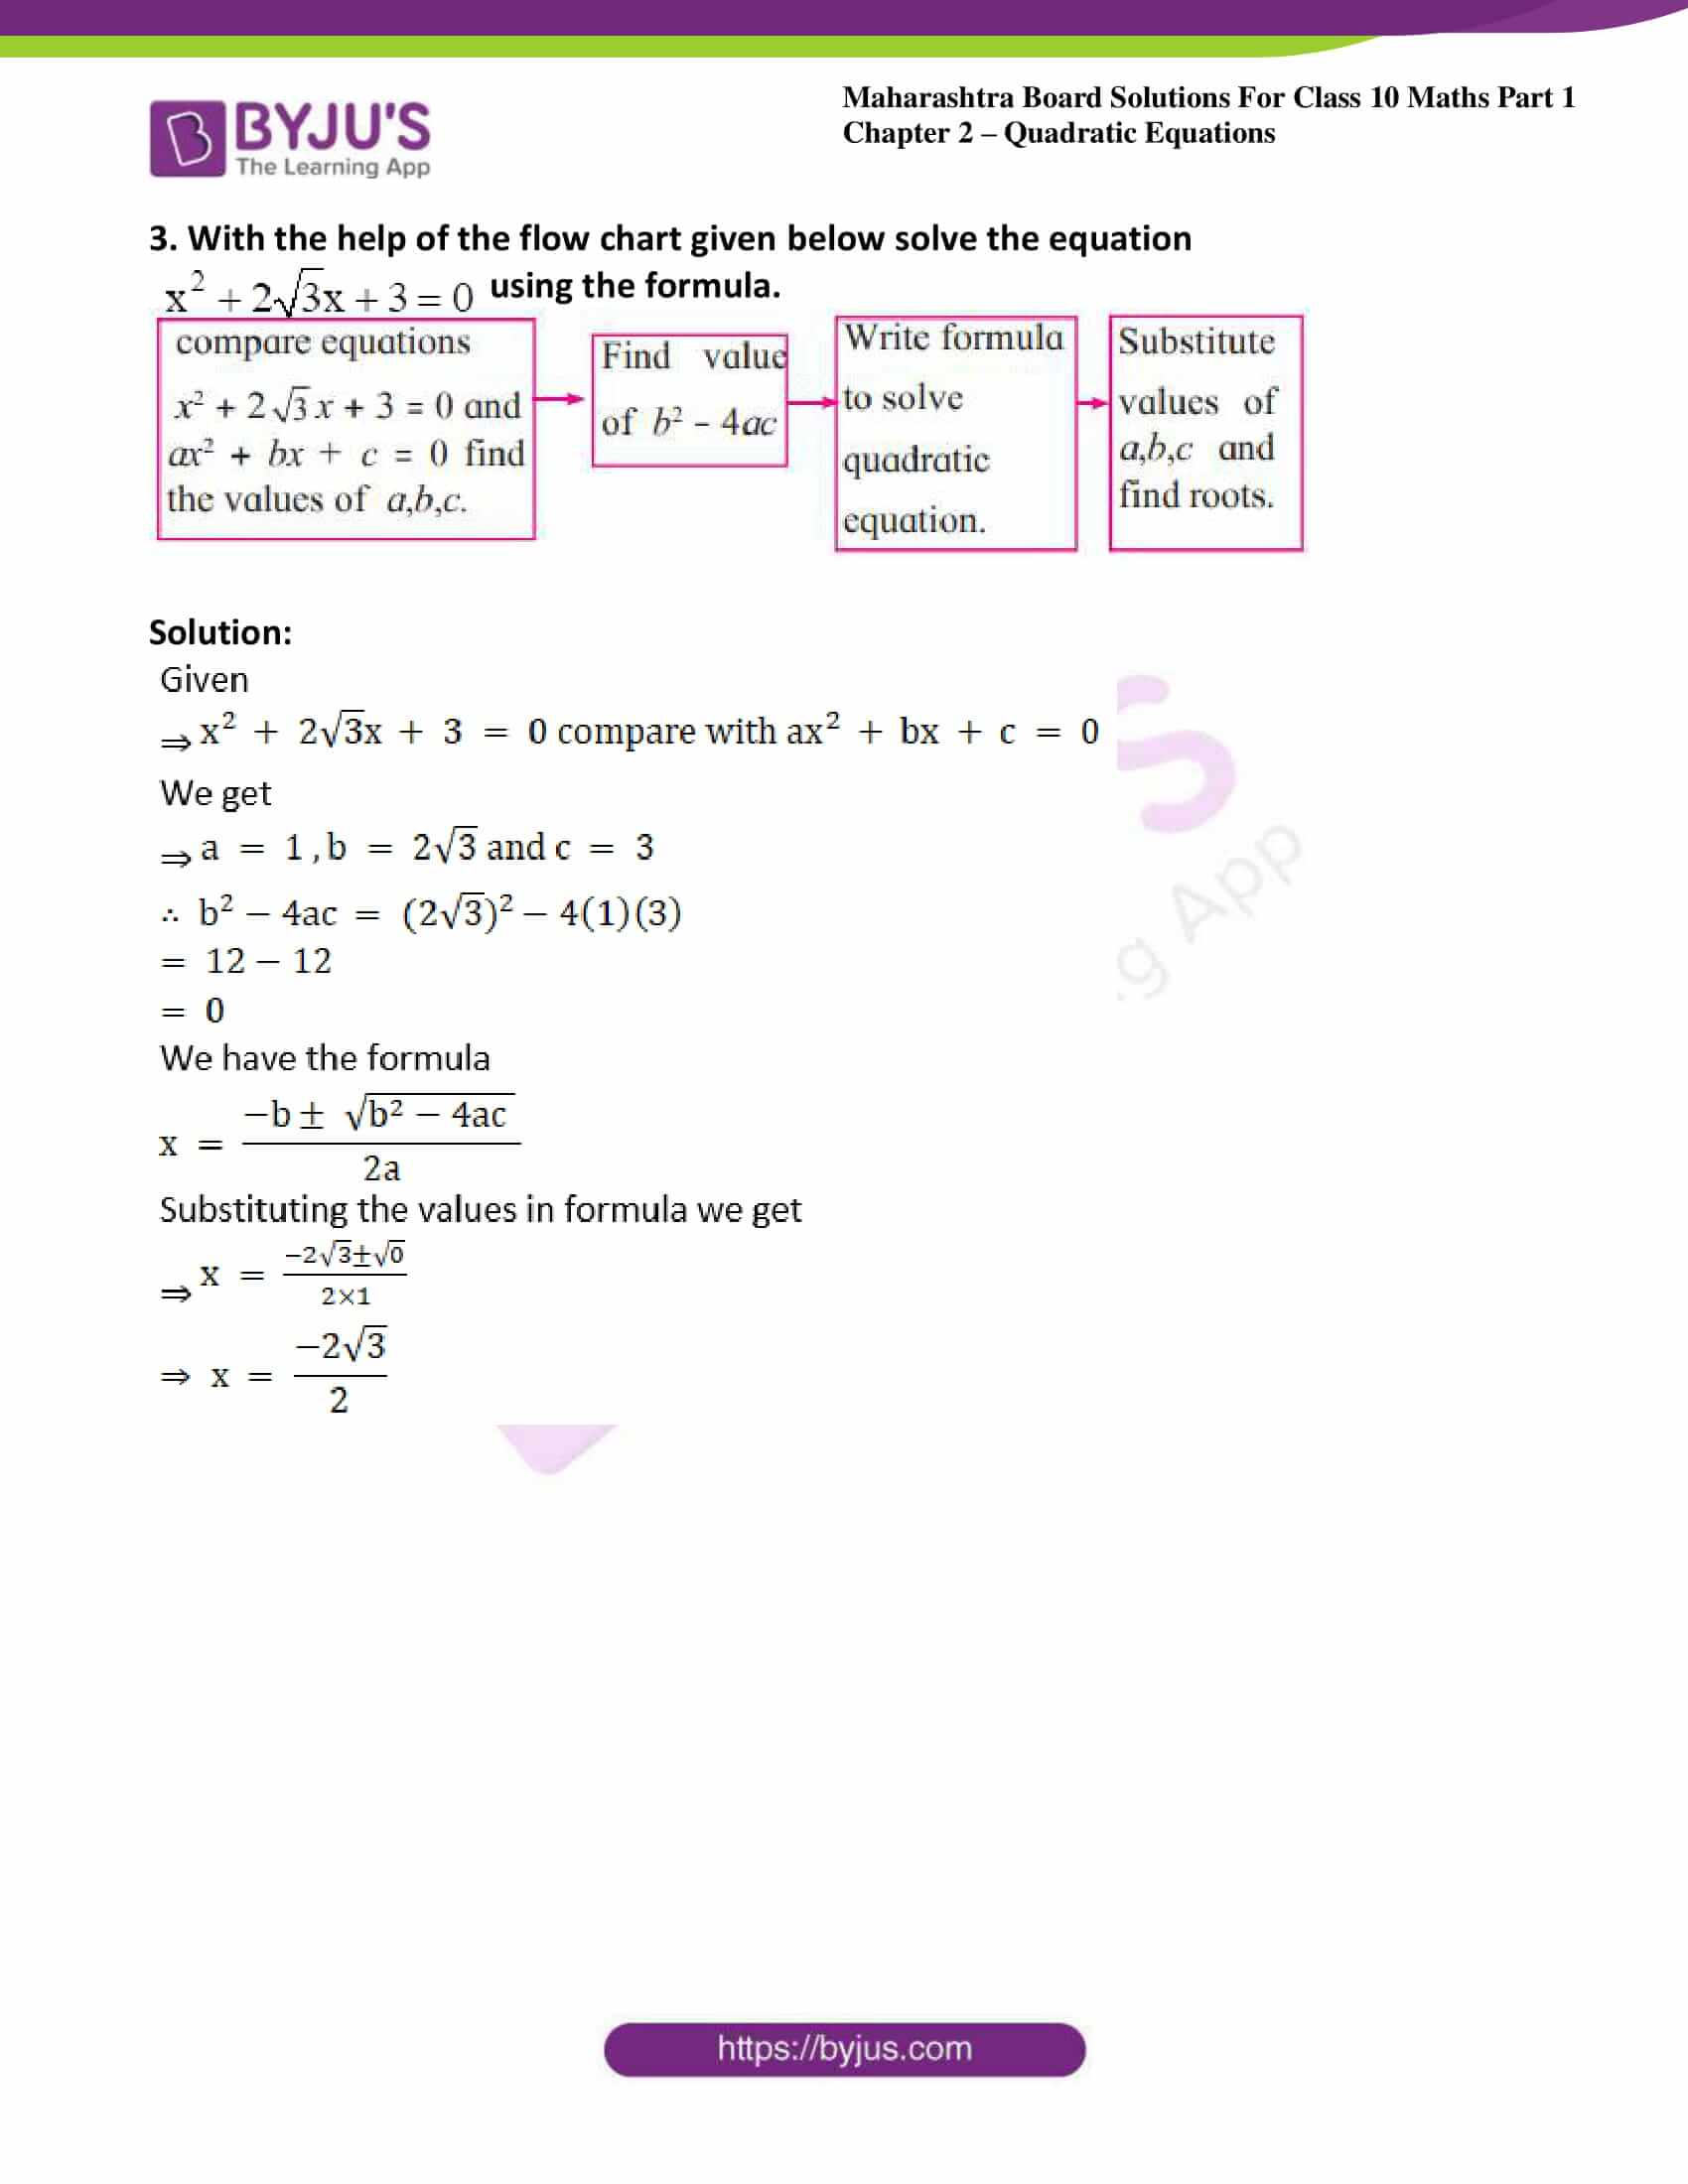 msbshse solutions class 10 maths part 1 chapter 2 21